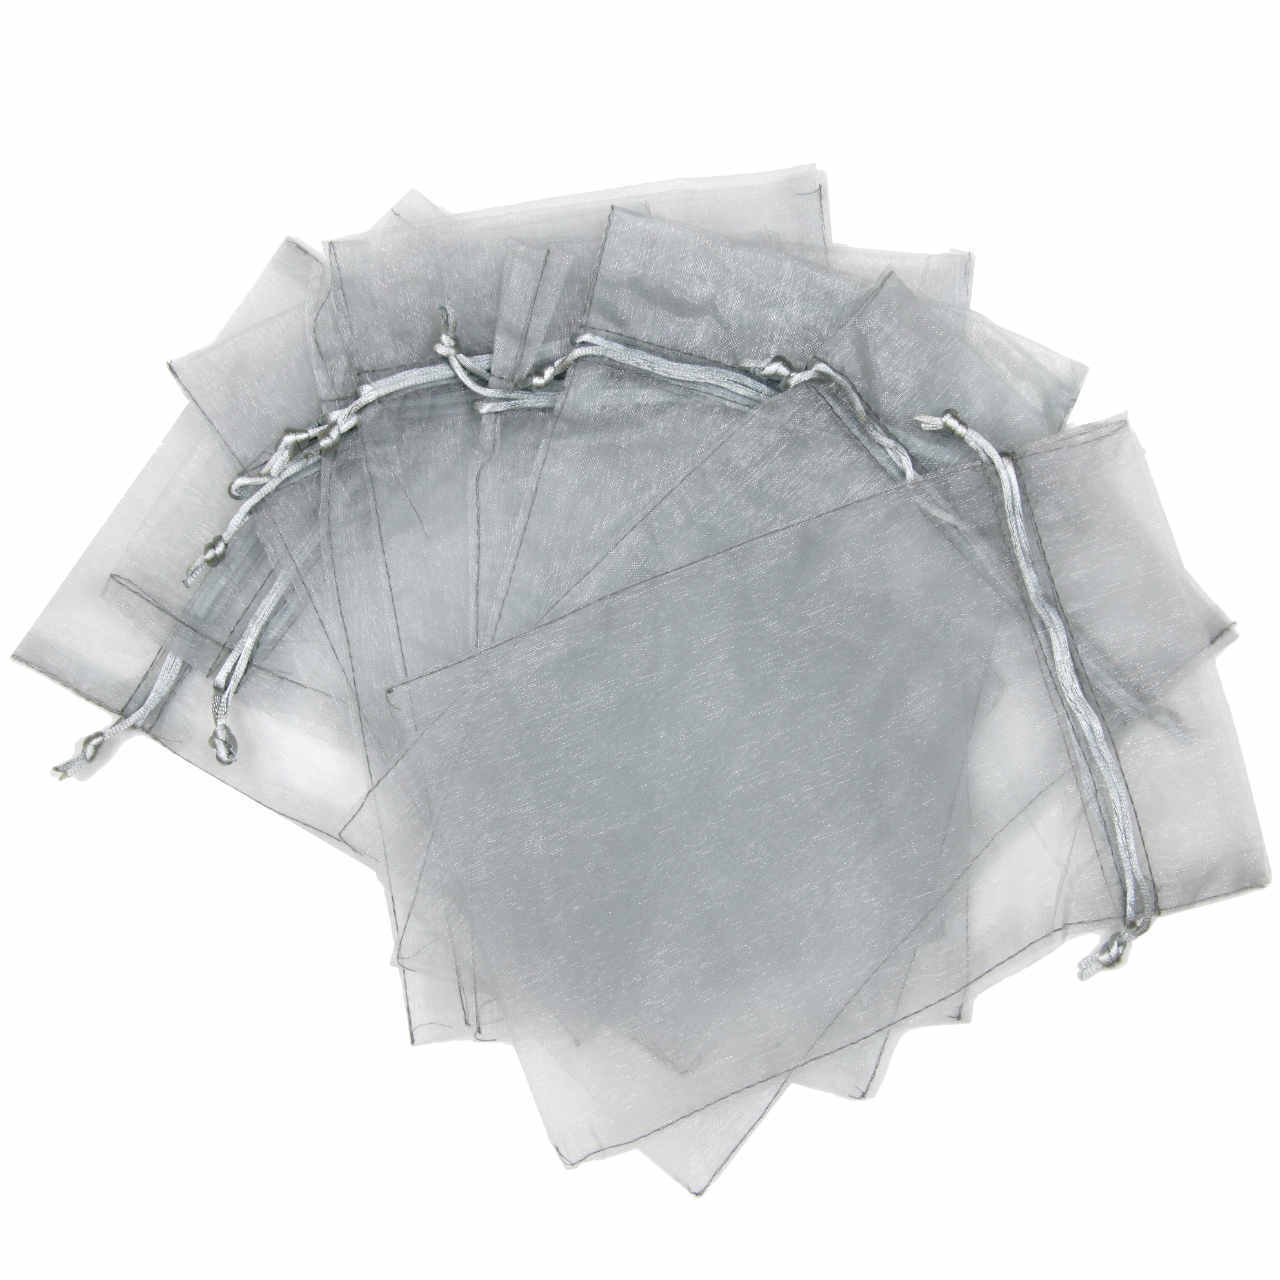 "Organza Bags Fabric Gift Favor Party Bags Drawstring (30 Pieces) - Large 8.75"" By 13.75"""